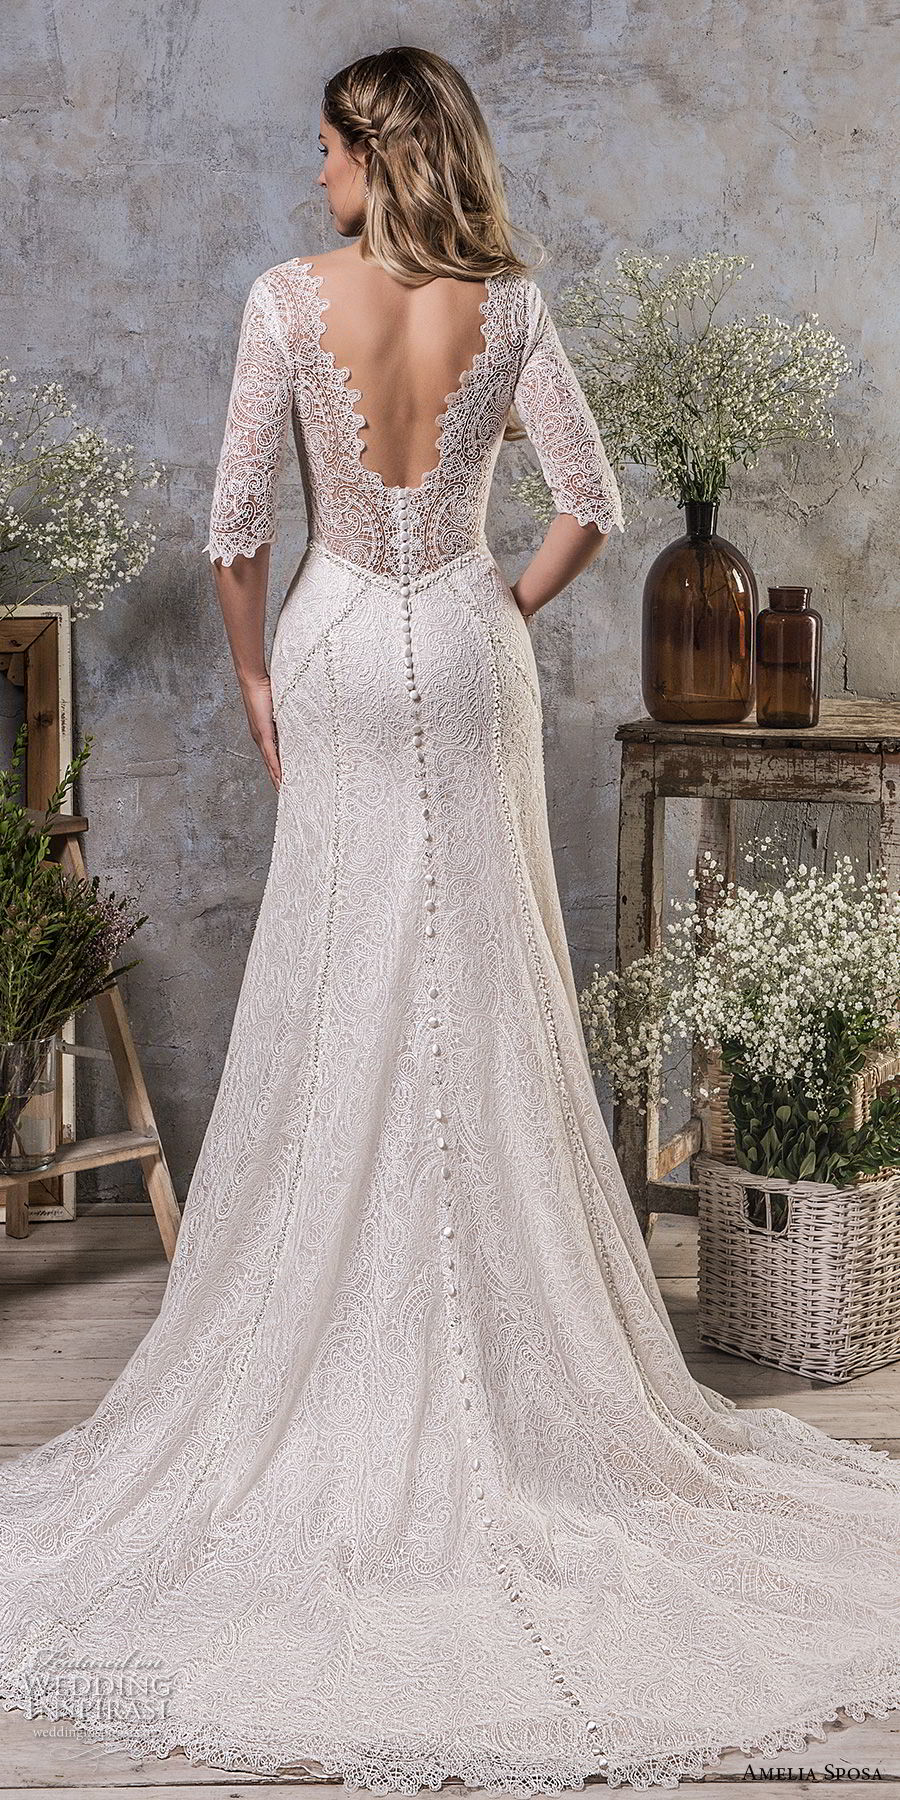 amelia sposa fall 2018 bridal half sleeves sweetheart neckline full embellishment elegant classic a line wedding dress v back medium train (6) bv